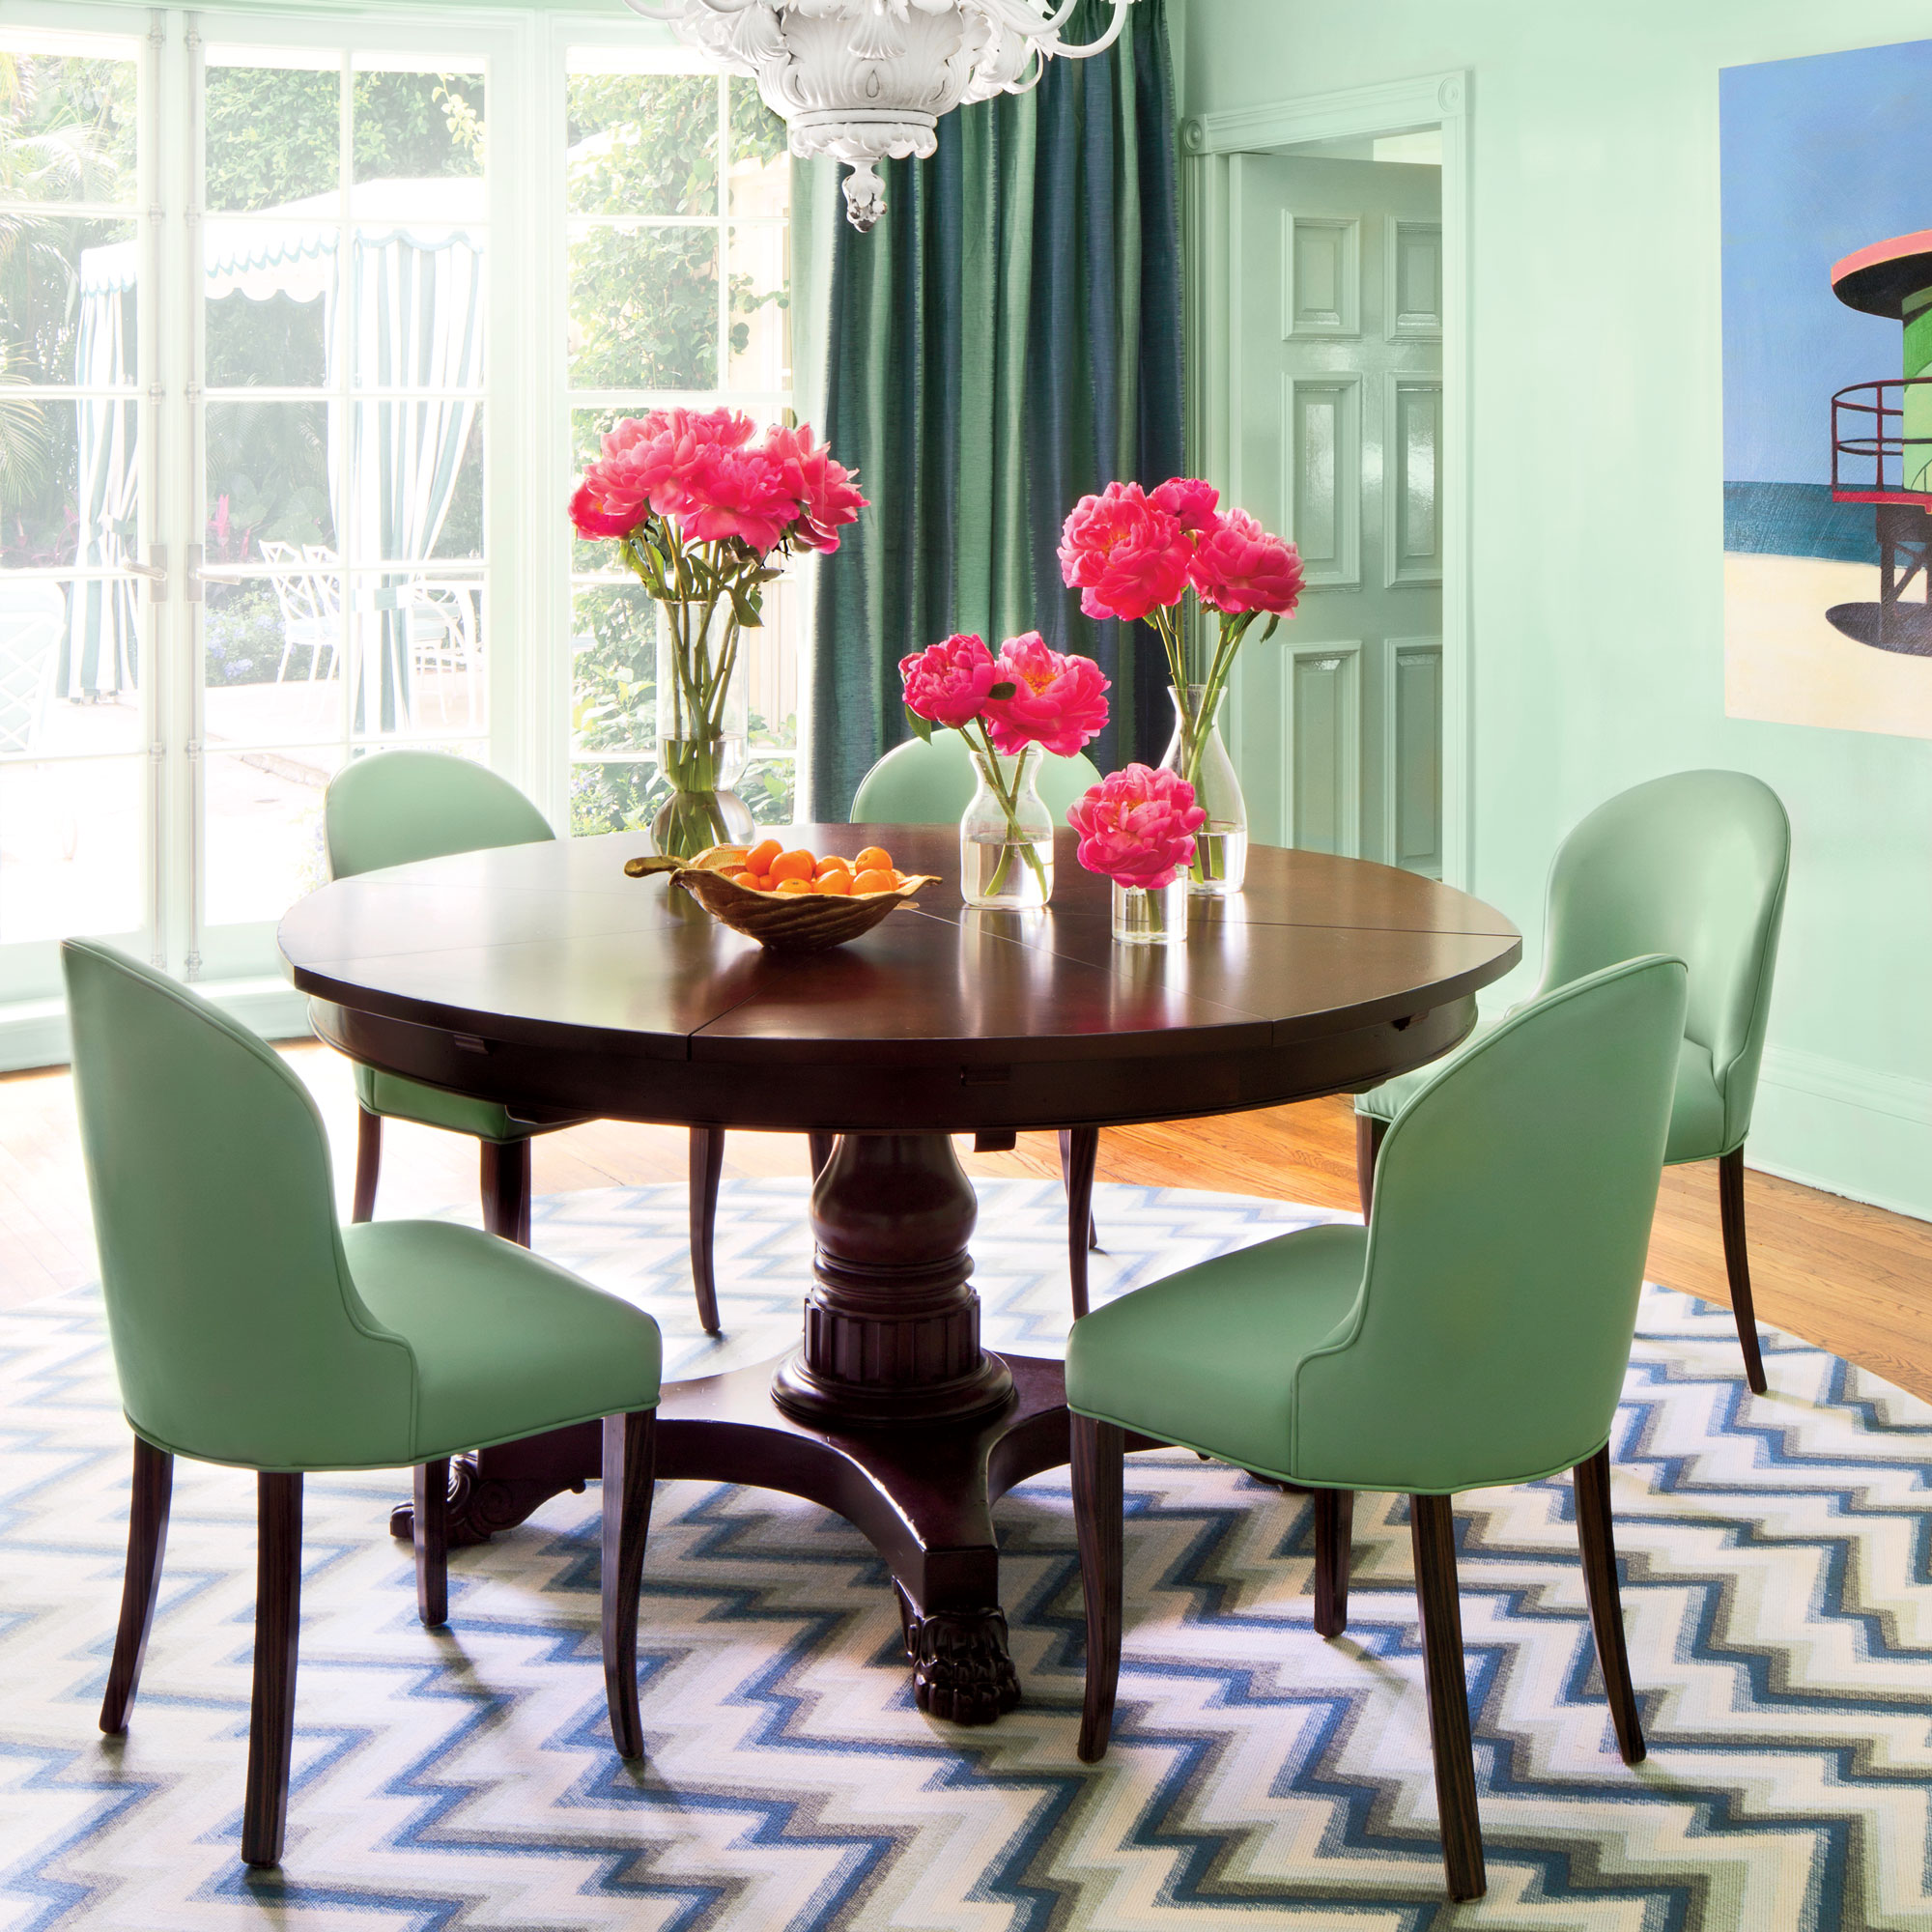 This retro-fresh room is convincing evidence that a monochrome palette makes a super bold statement. Go all out in various shades of one color; then choose a grounding piece, like a rug, to tie them all together in perfect harmony.                             Idea Spotlight                             Let a piece of art be your guide. This Palm Beach dining room takes its color cues from a painting of a lifeguard stand that the owners scooped up in Manhattan.